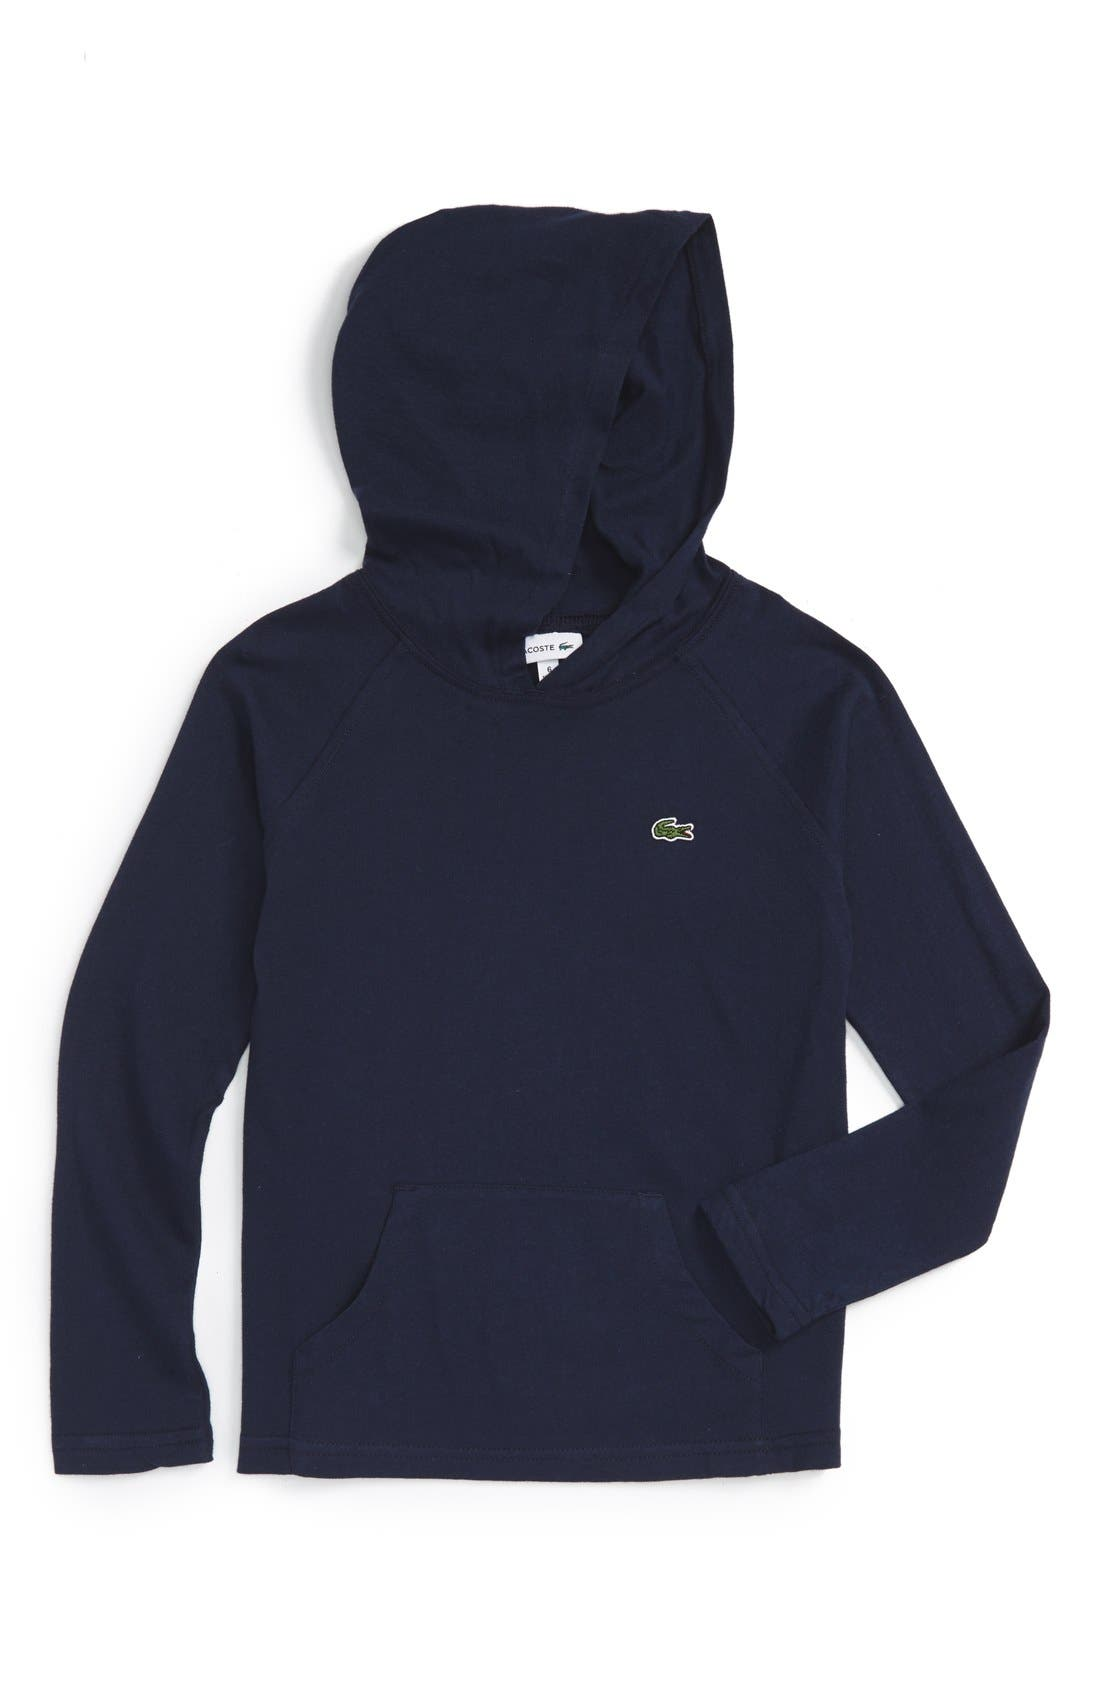 Alternate Image 1 Selected - Lacoste Hooded Jersey T-Shirt (Big Boys)